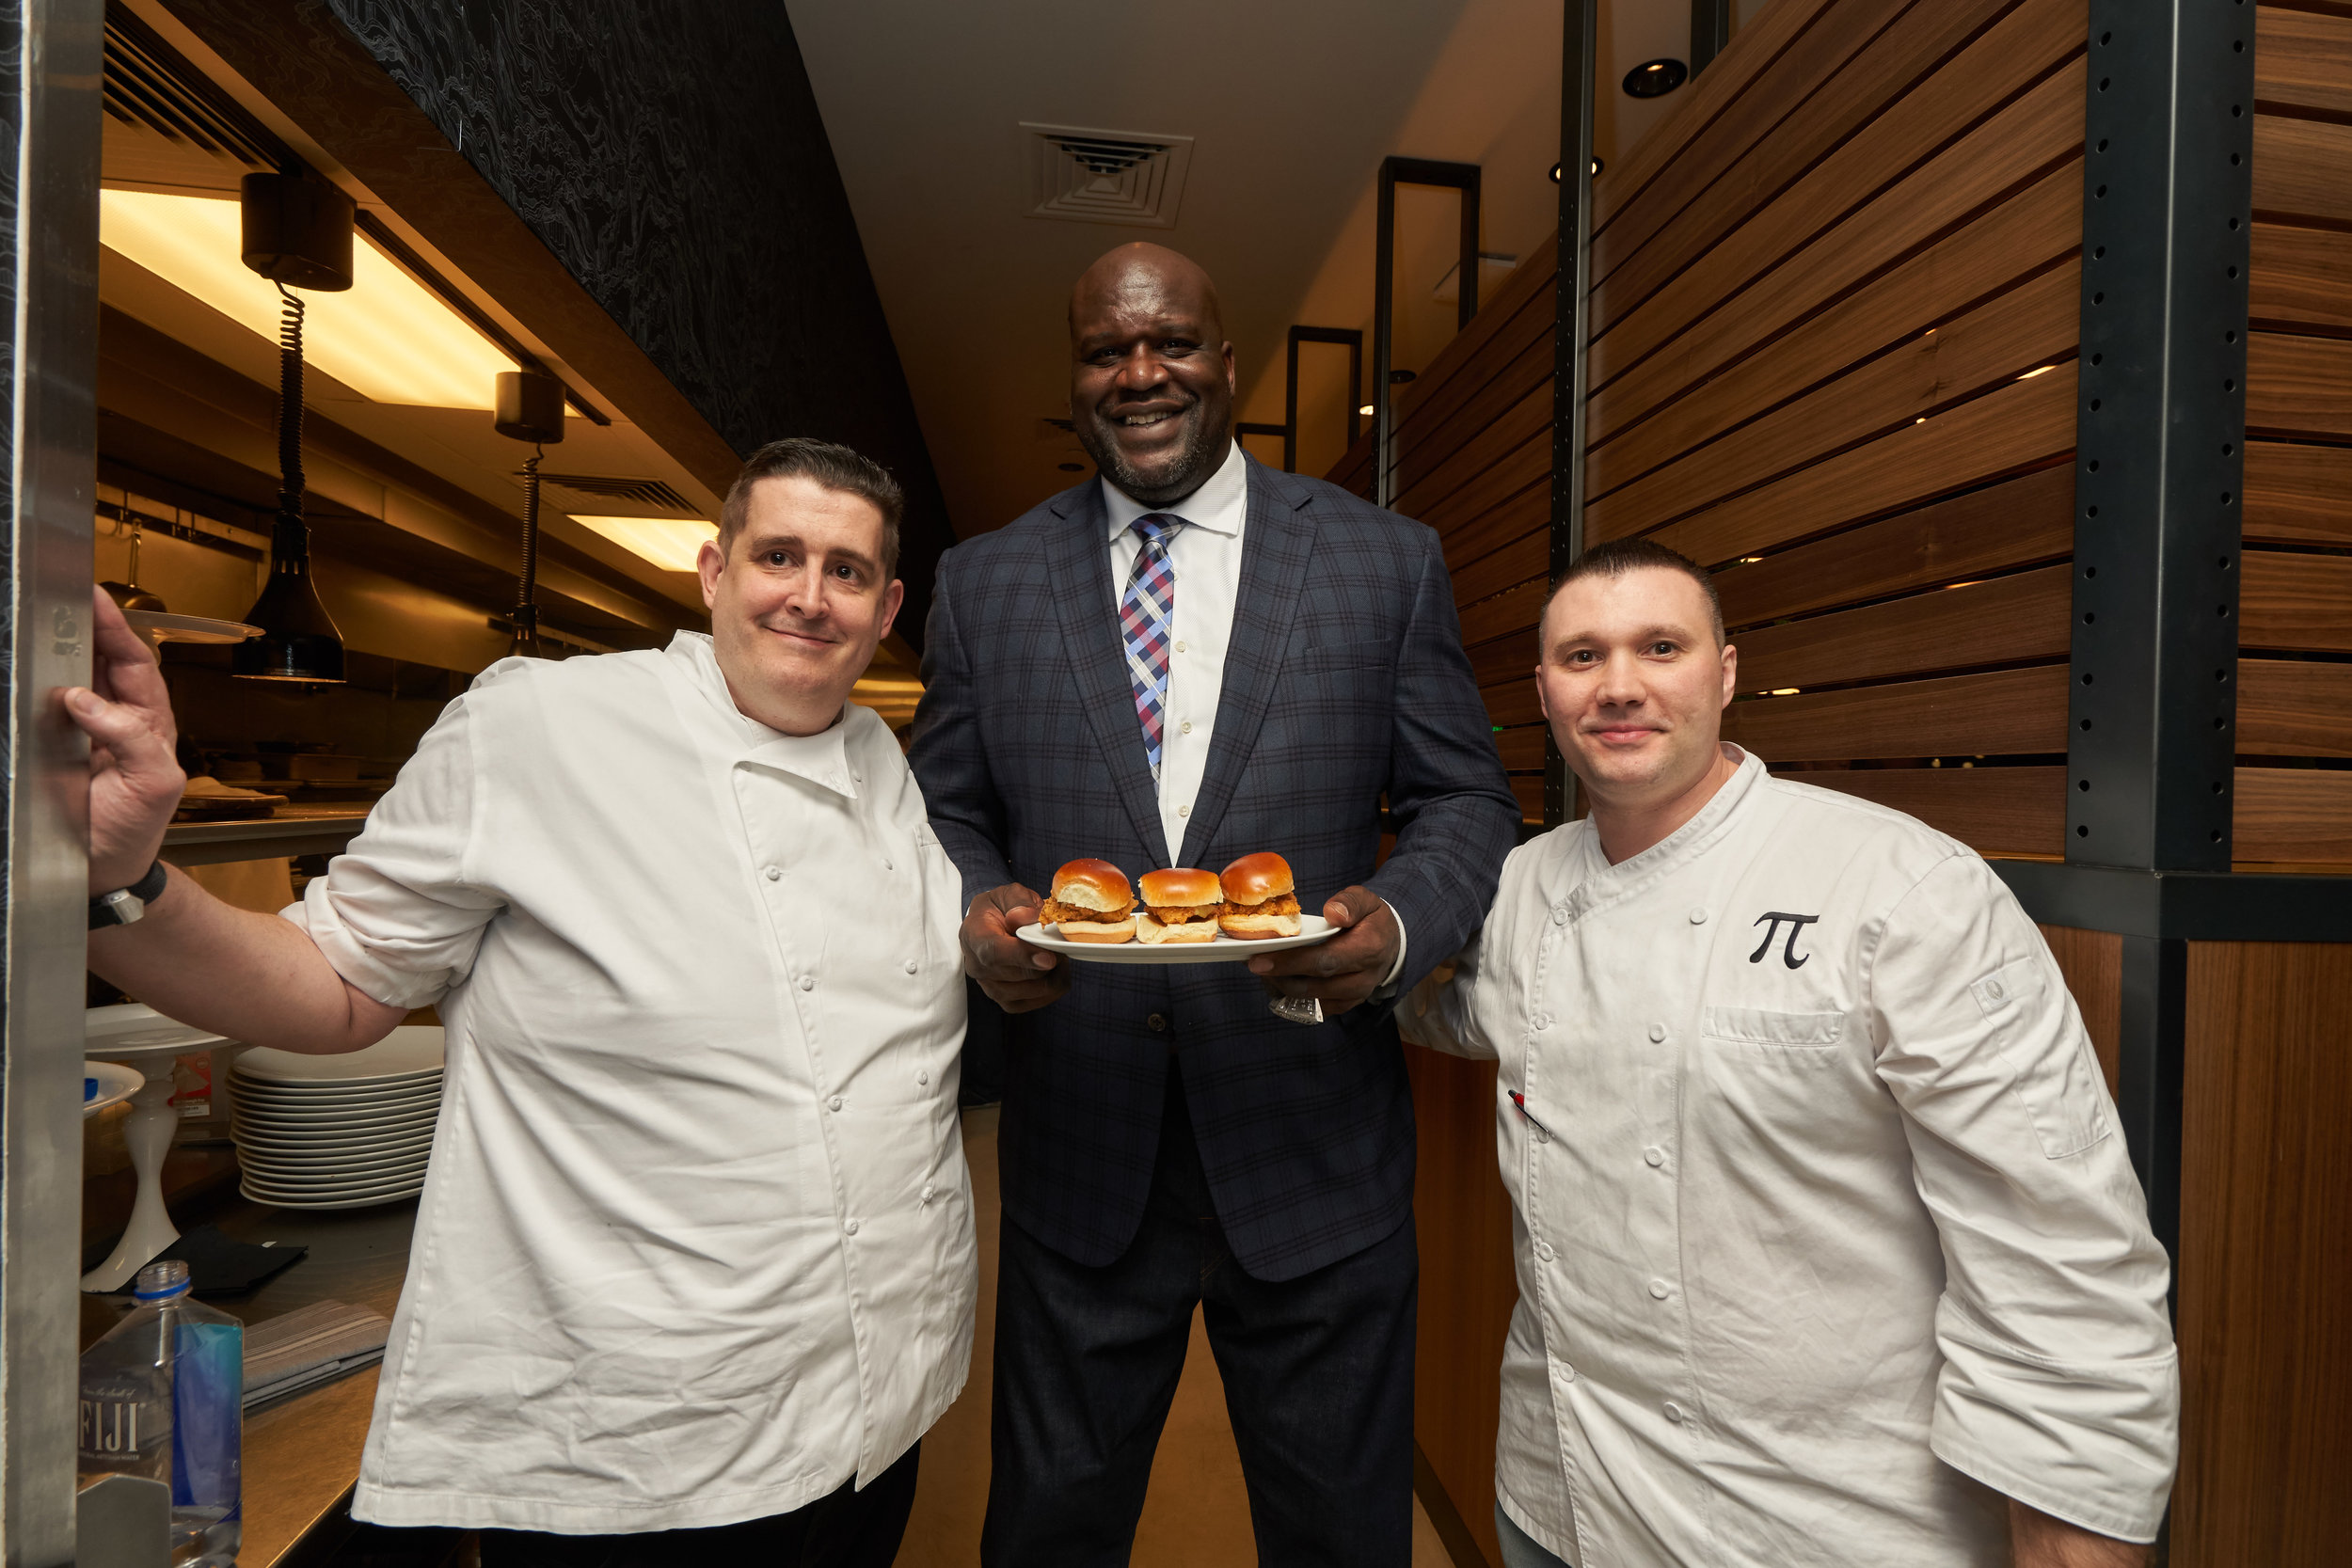 Chef Matthew Silverman and Shaquille O'Neal